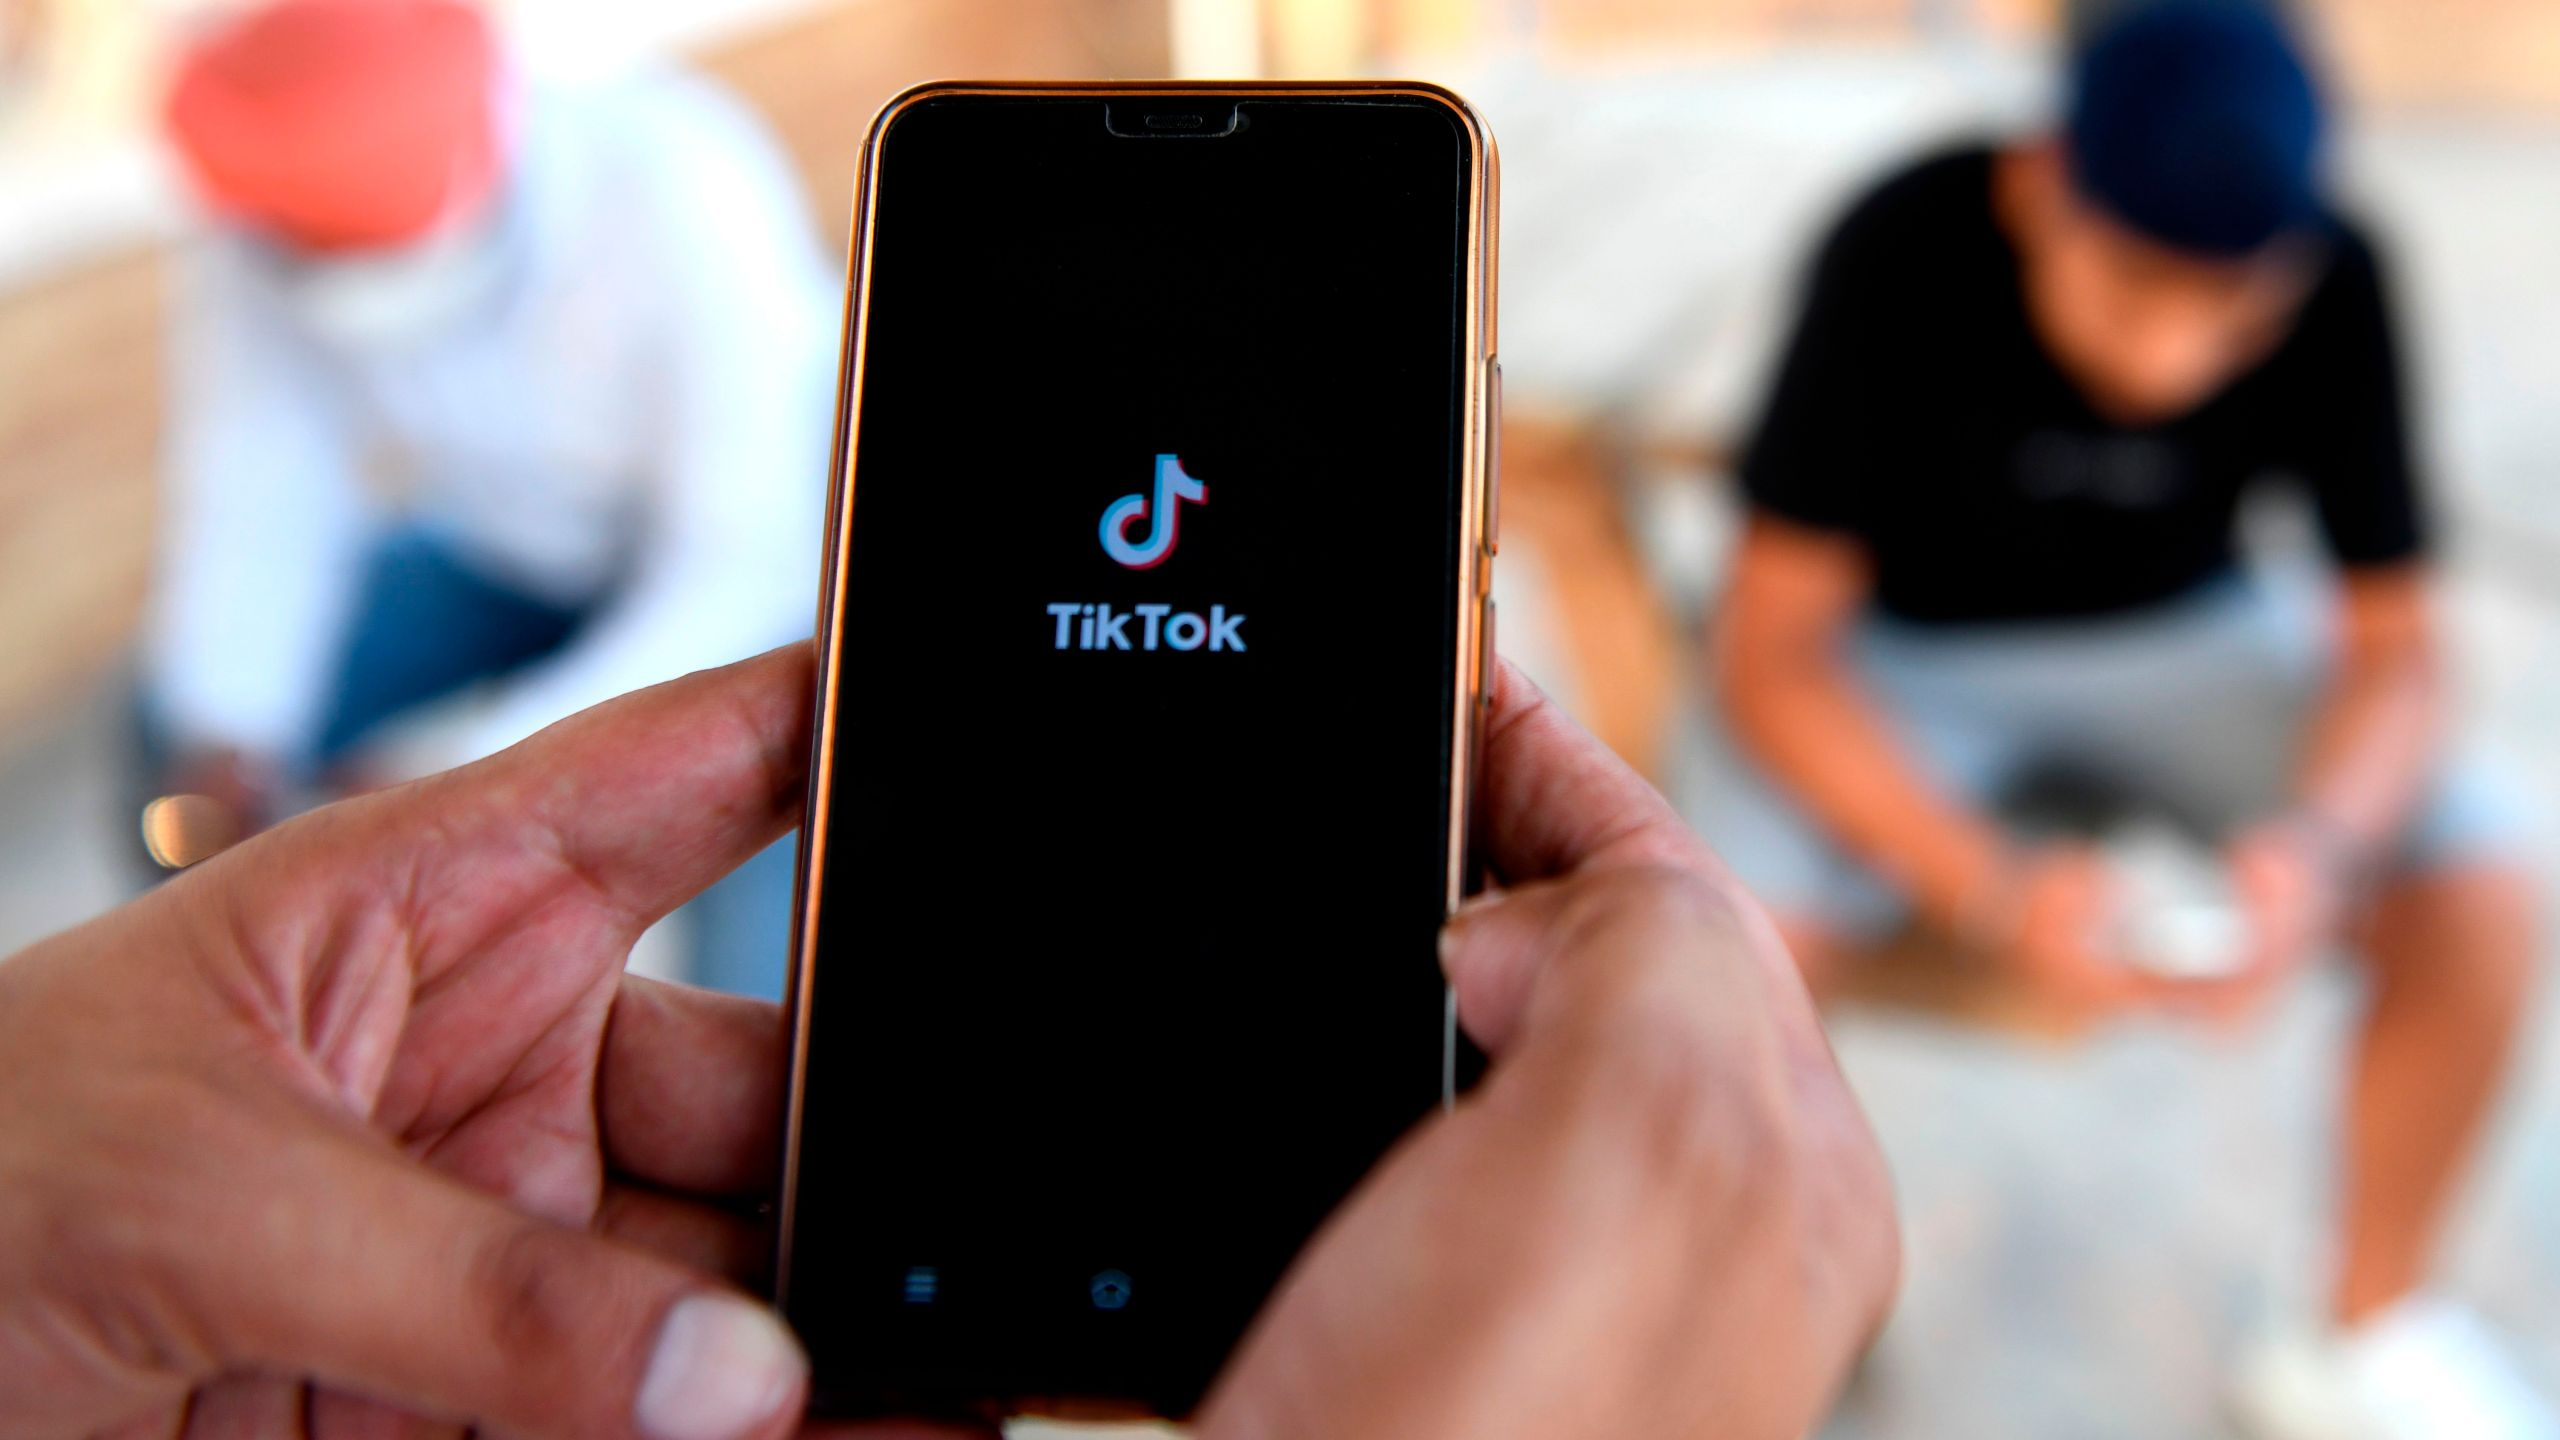 Indian mobile users browse through the Chinese-owned video-sharing 'Tik Tok' app on a smartphones in Amritsar on June 30, 2020. (NARINDER NANU/AFP via Getty Images)